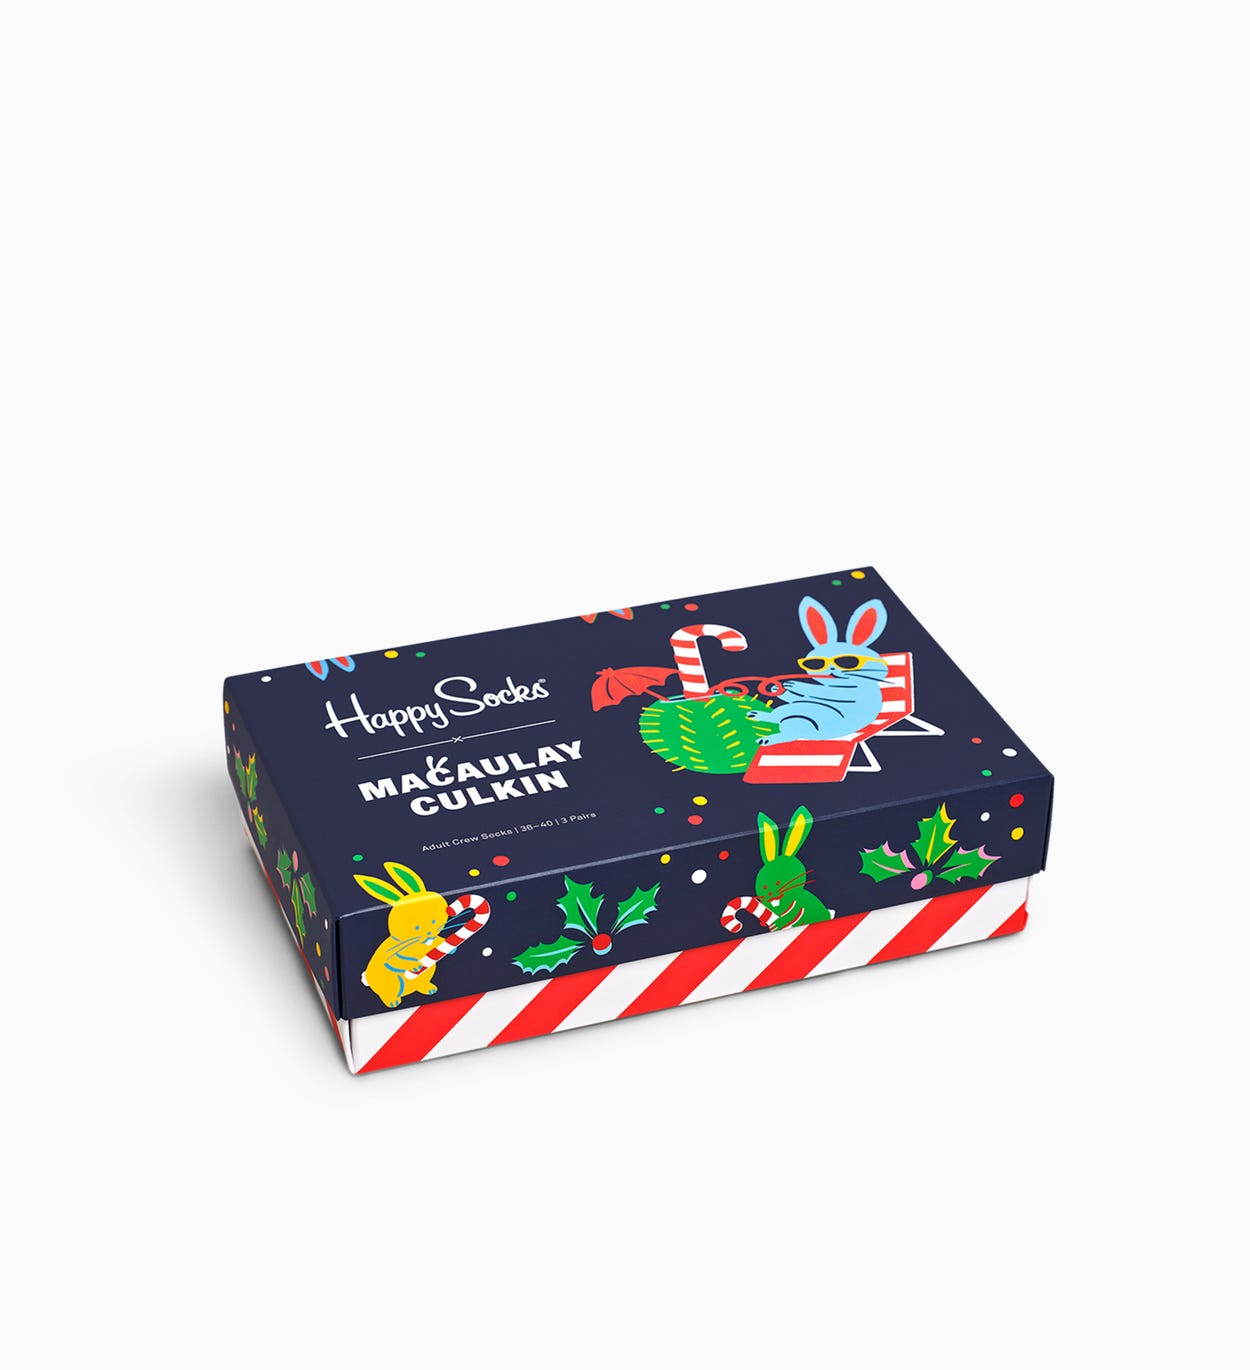 Black Macaulay Culkin Gift Box | Happy Socks